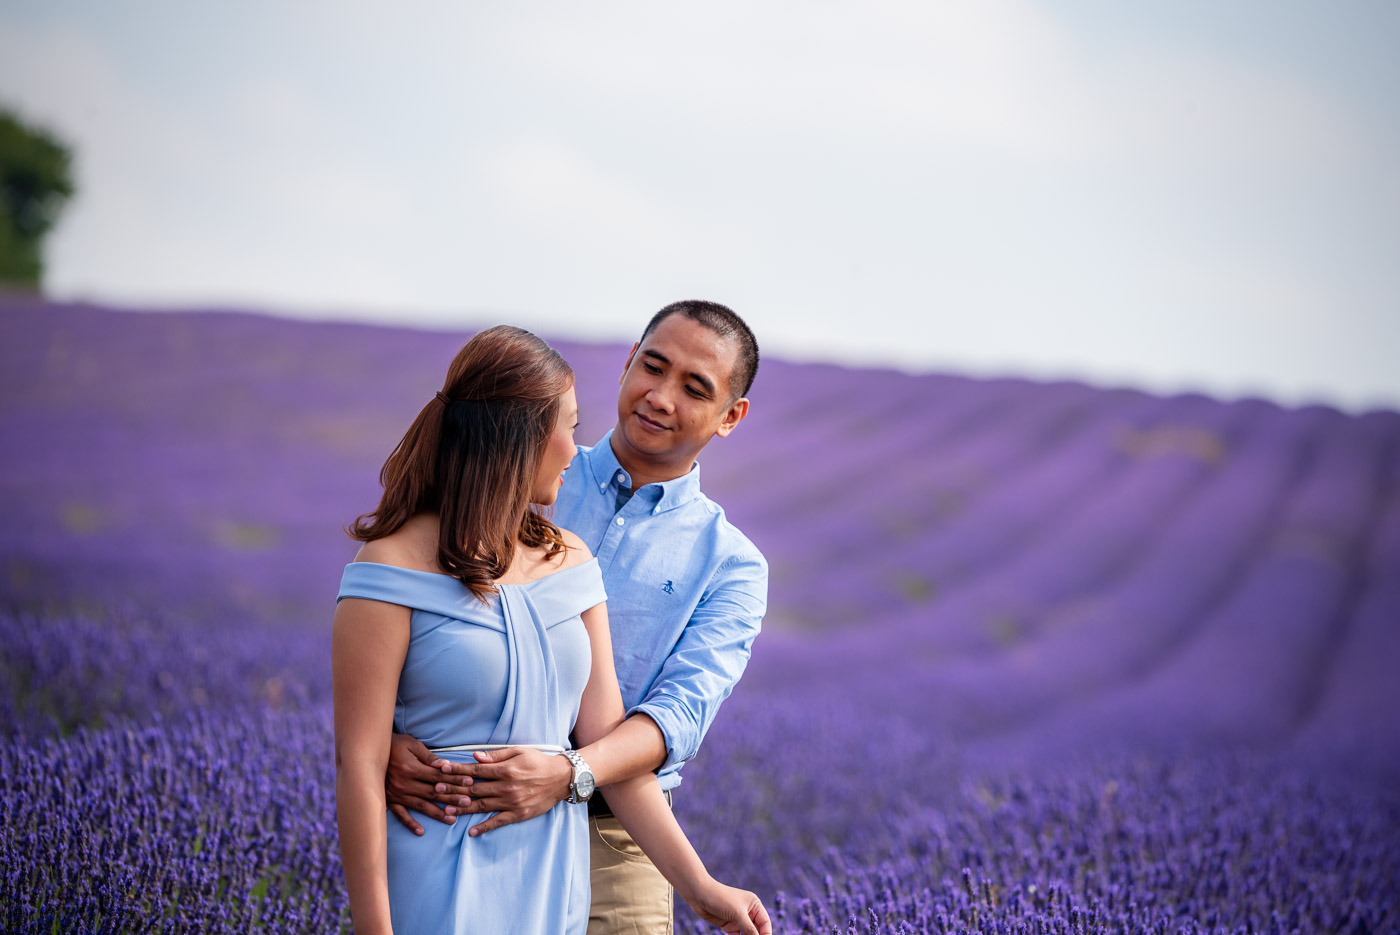 Happily married and in love couple looking at each other in lavender field